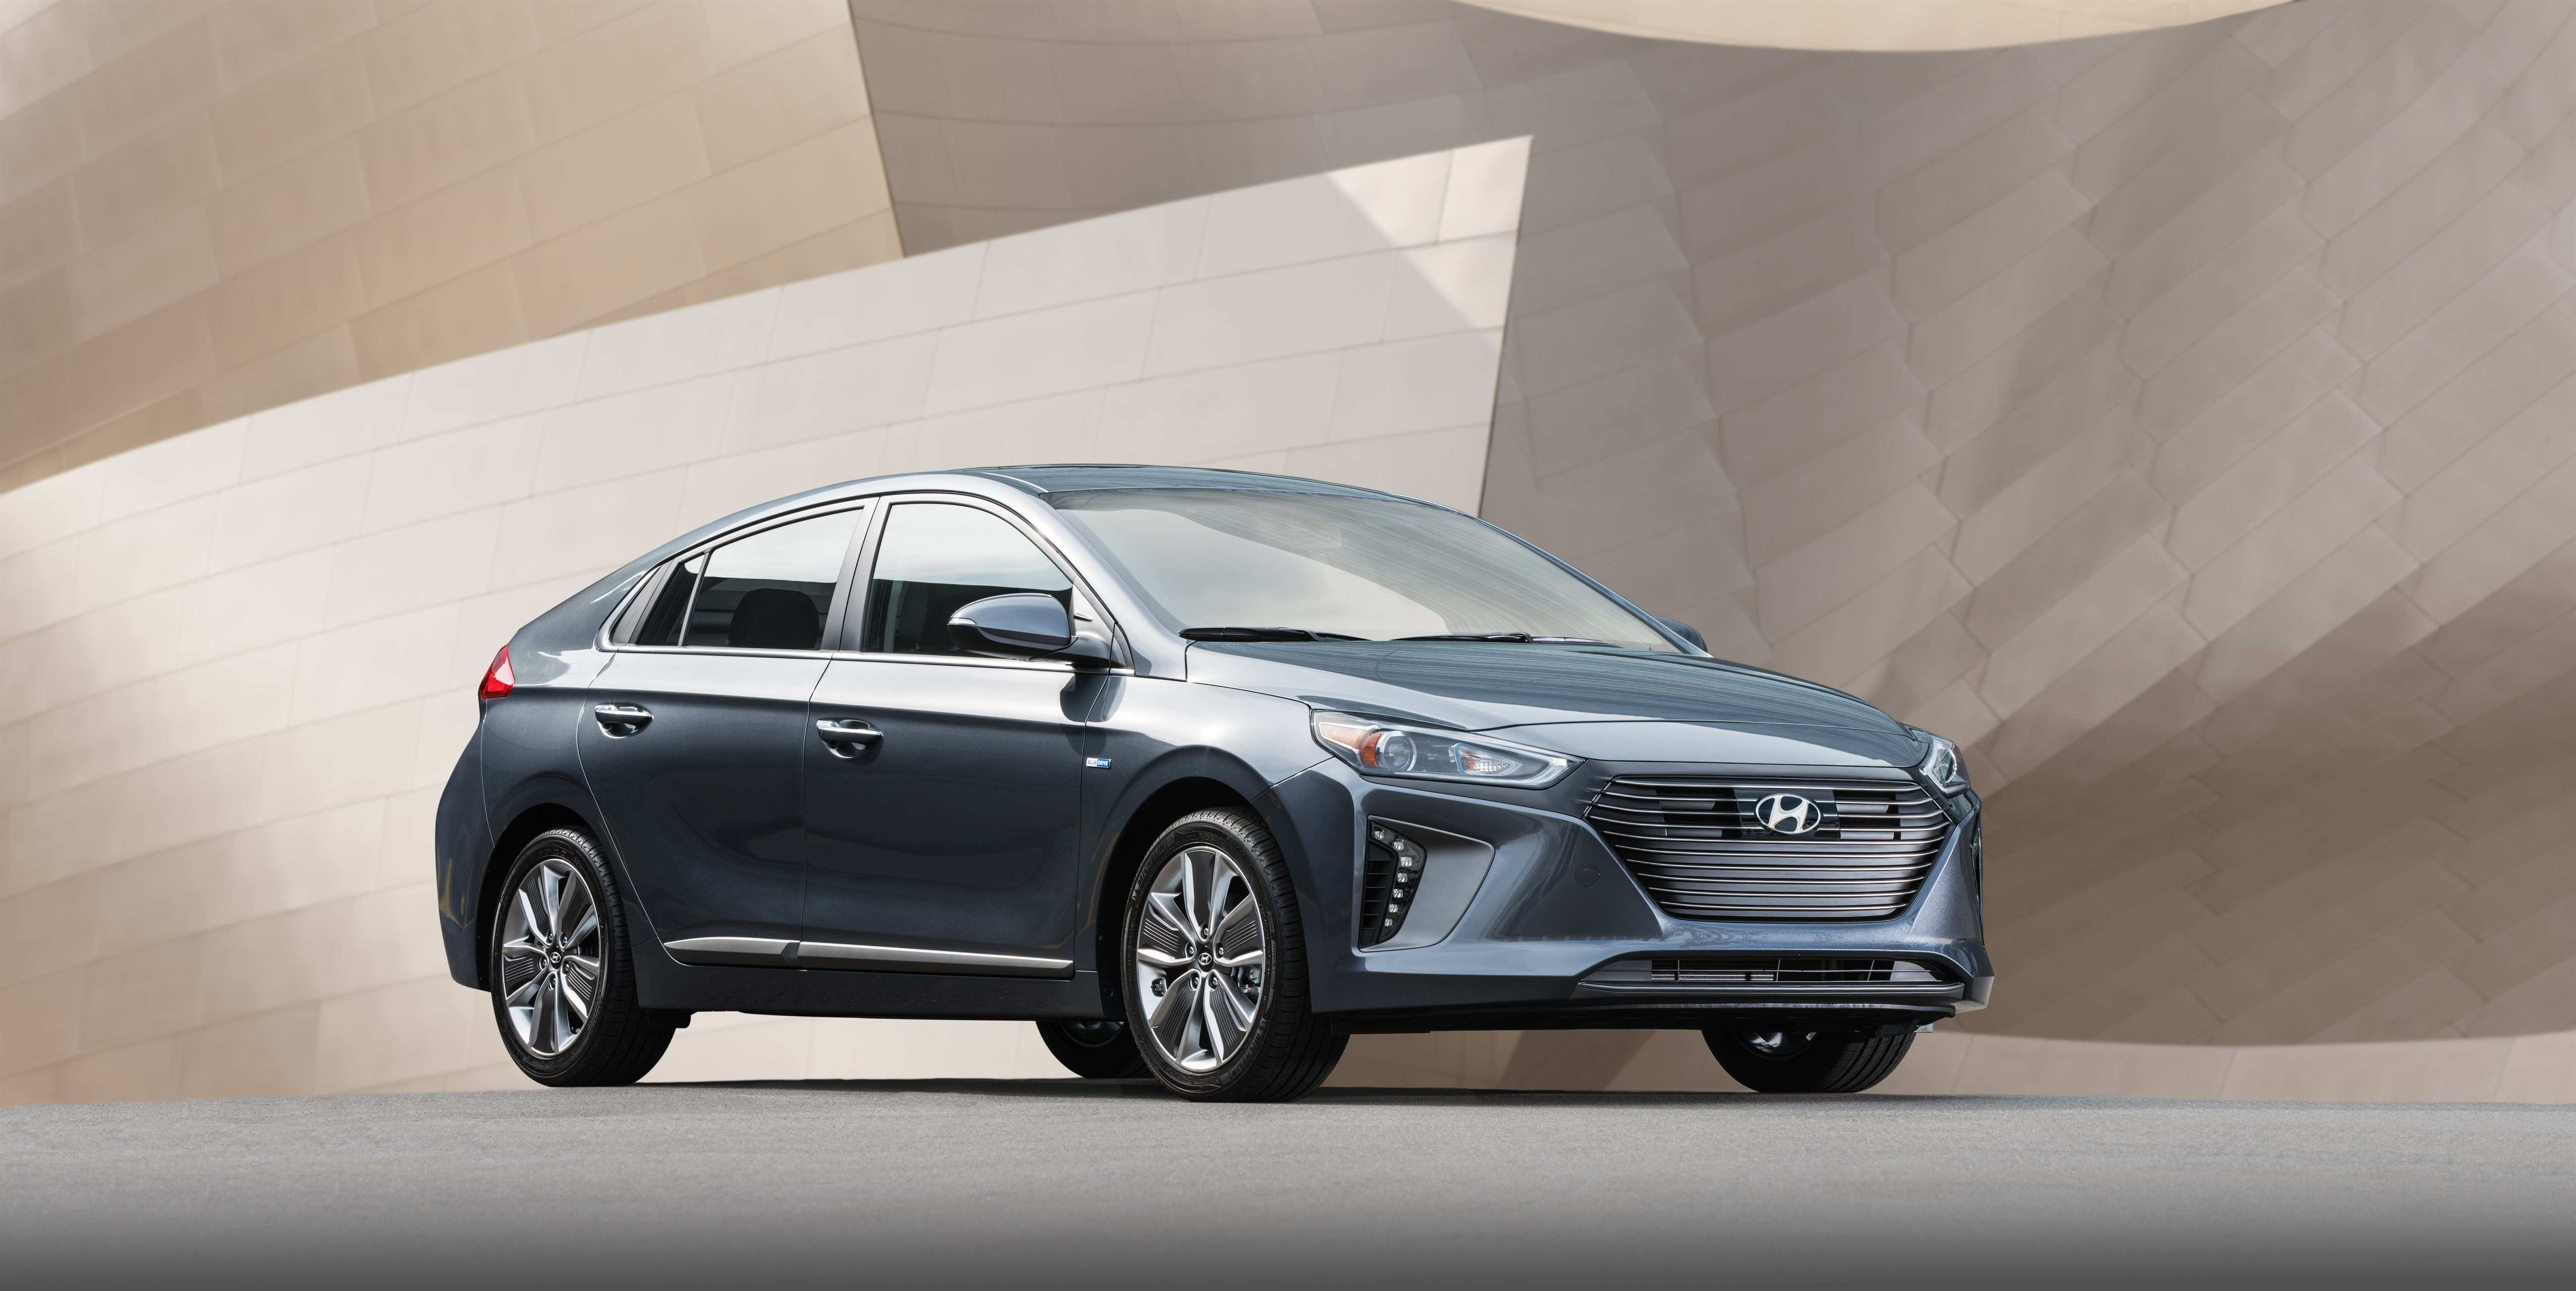 25 Great 2019 Hyundai Ioniq Electric Performance with 2019 Hyundai Ioniq Electric